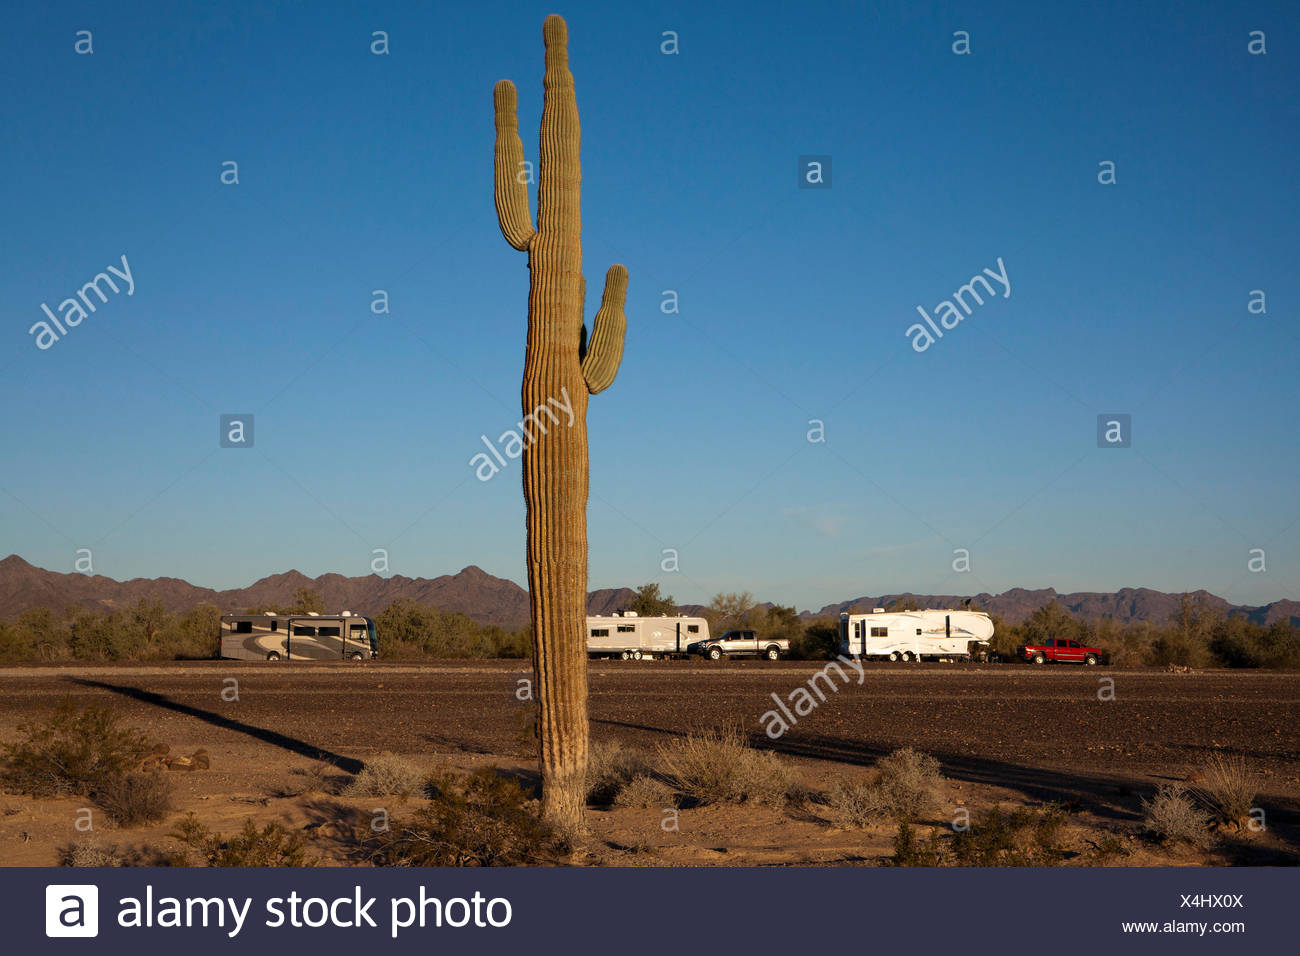 Wintertime visitors in RVs in the Bureau of Land Management's La Posa Long Term Visitor Area south of Quartzsite, Arizona. - Stock Image